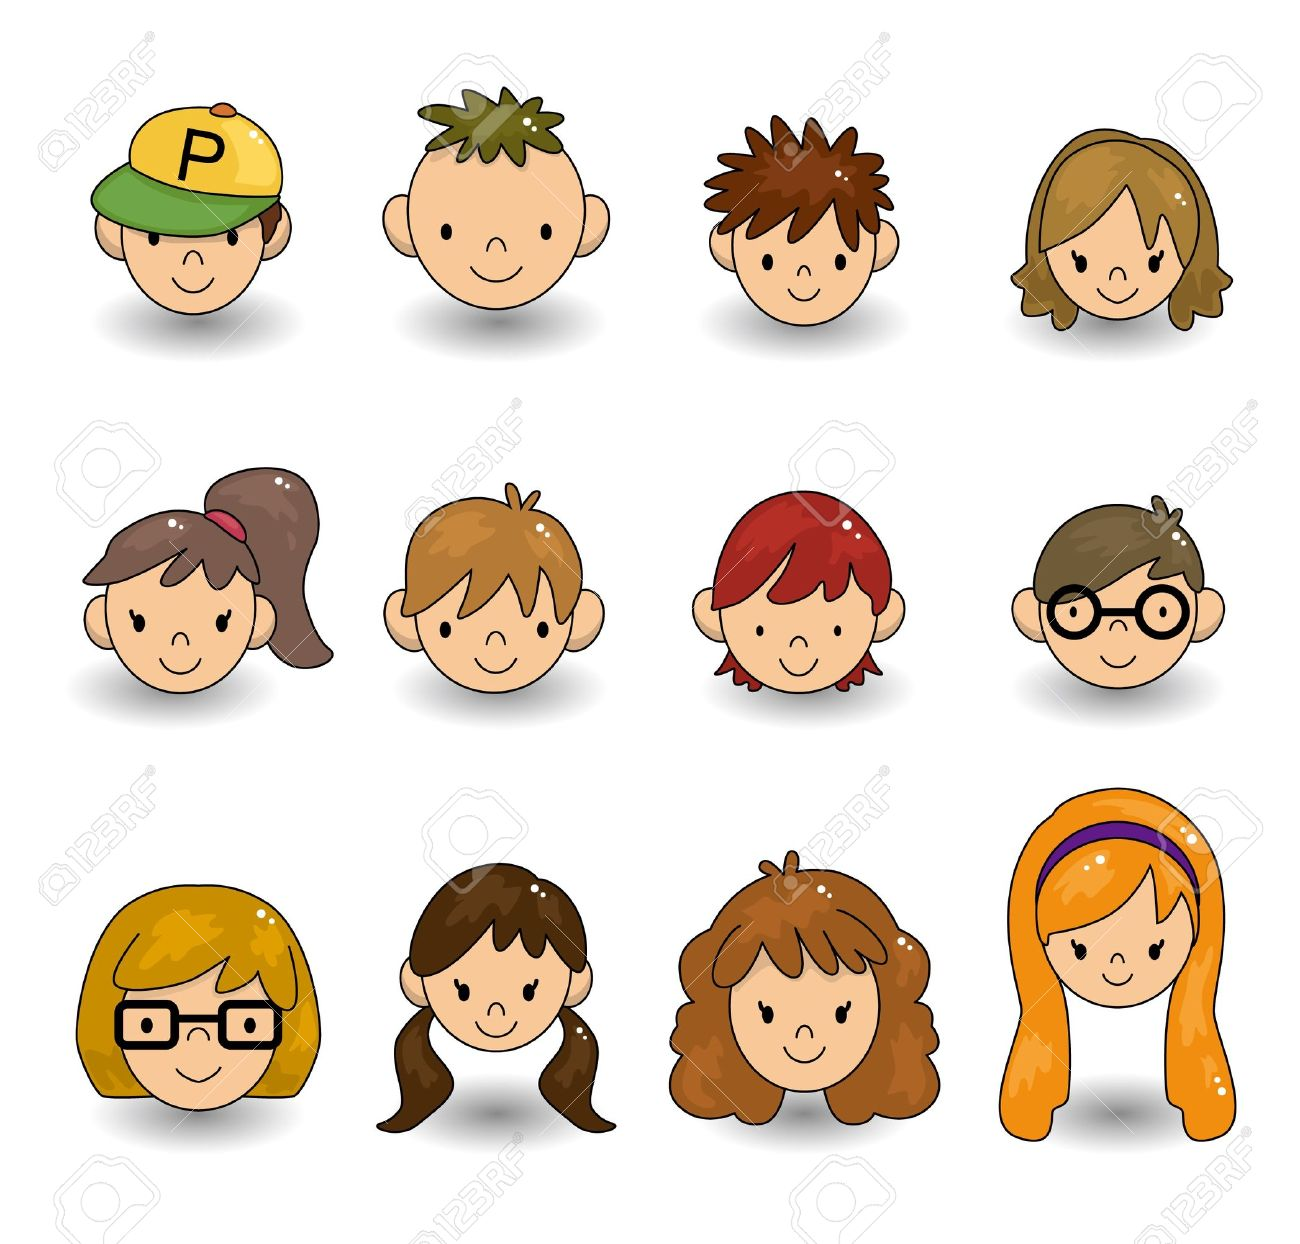 cartoon young people face icon Stock Vector - 9935211